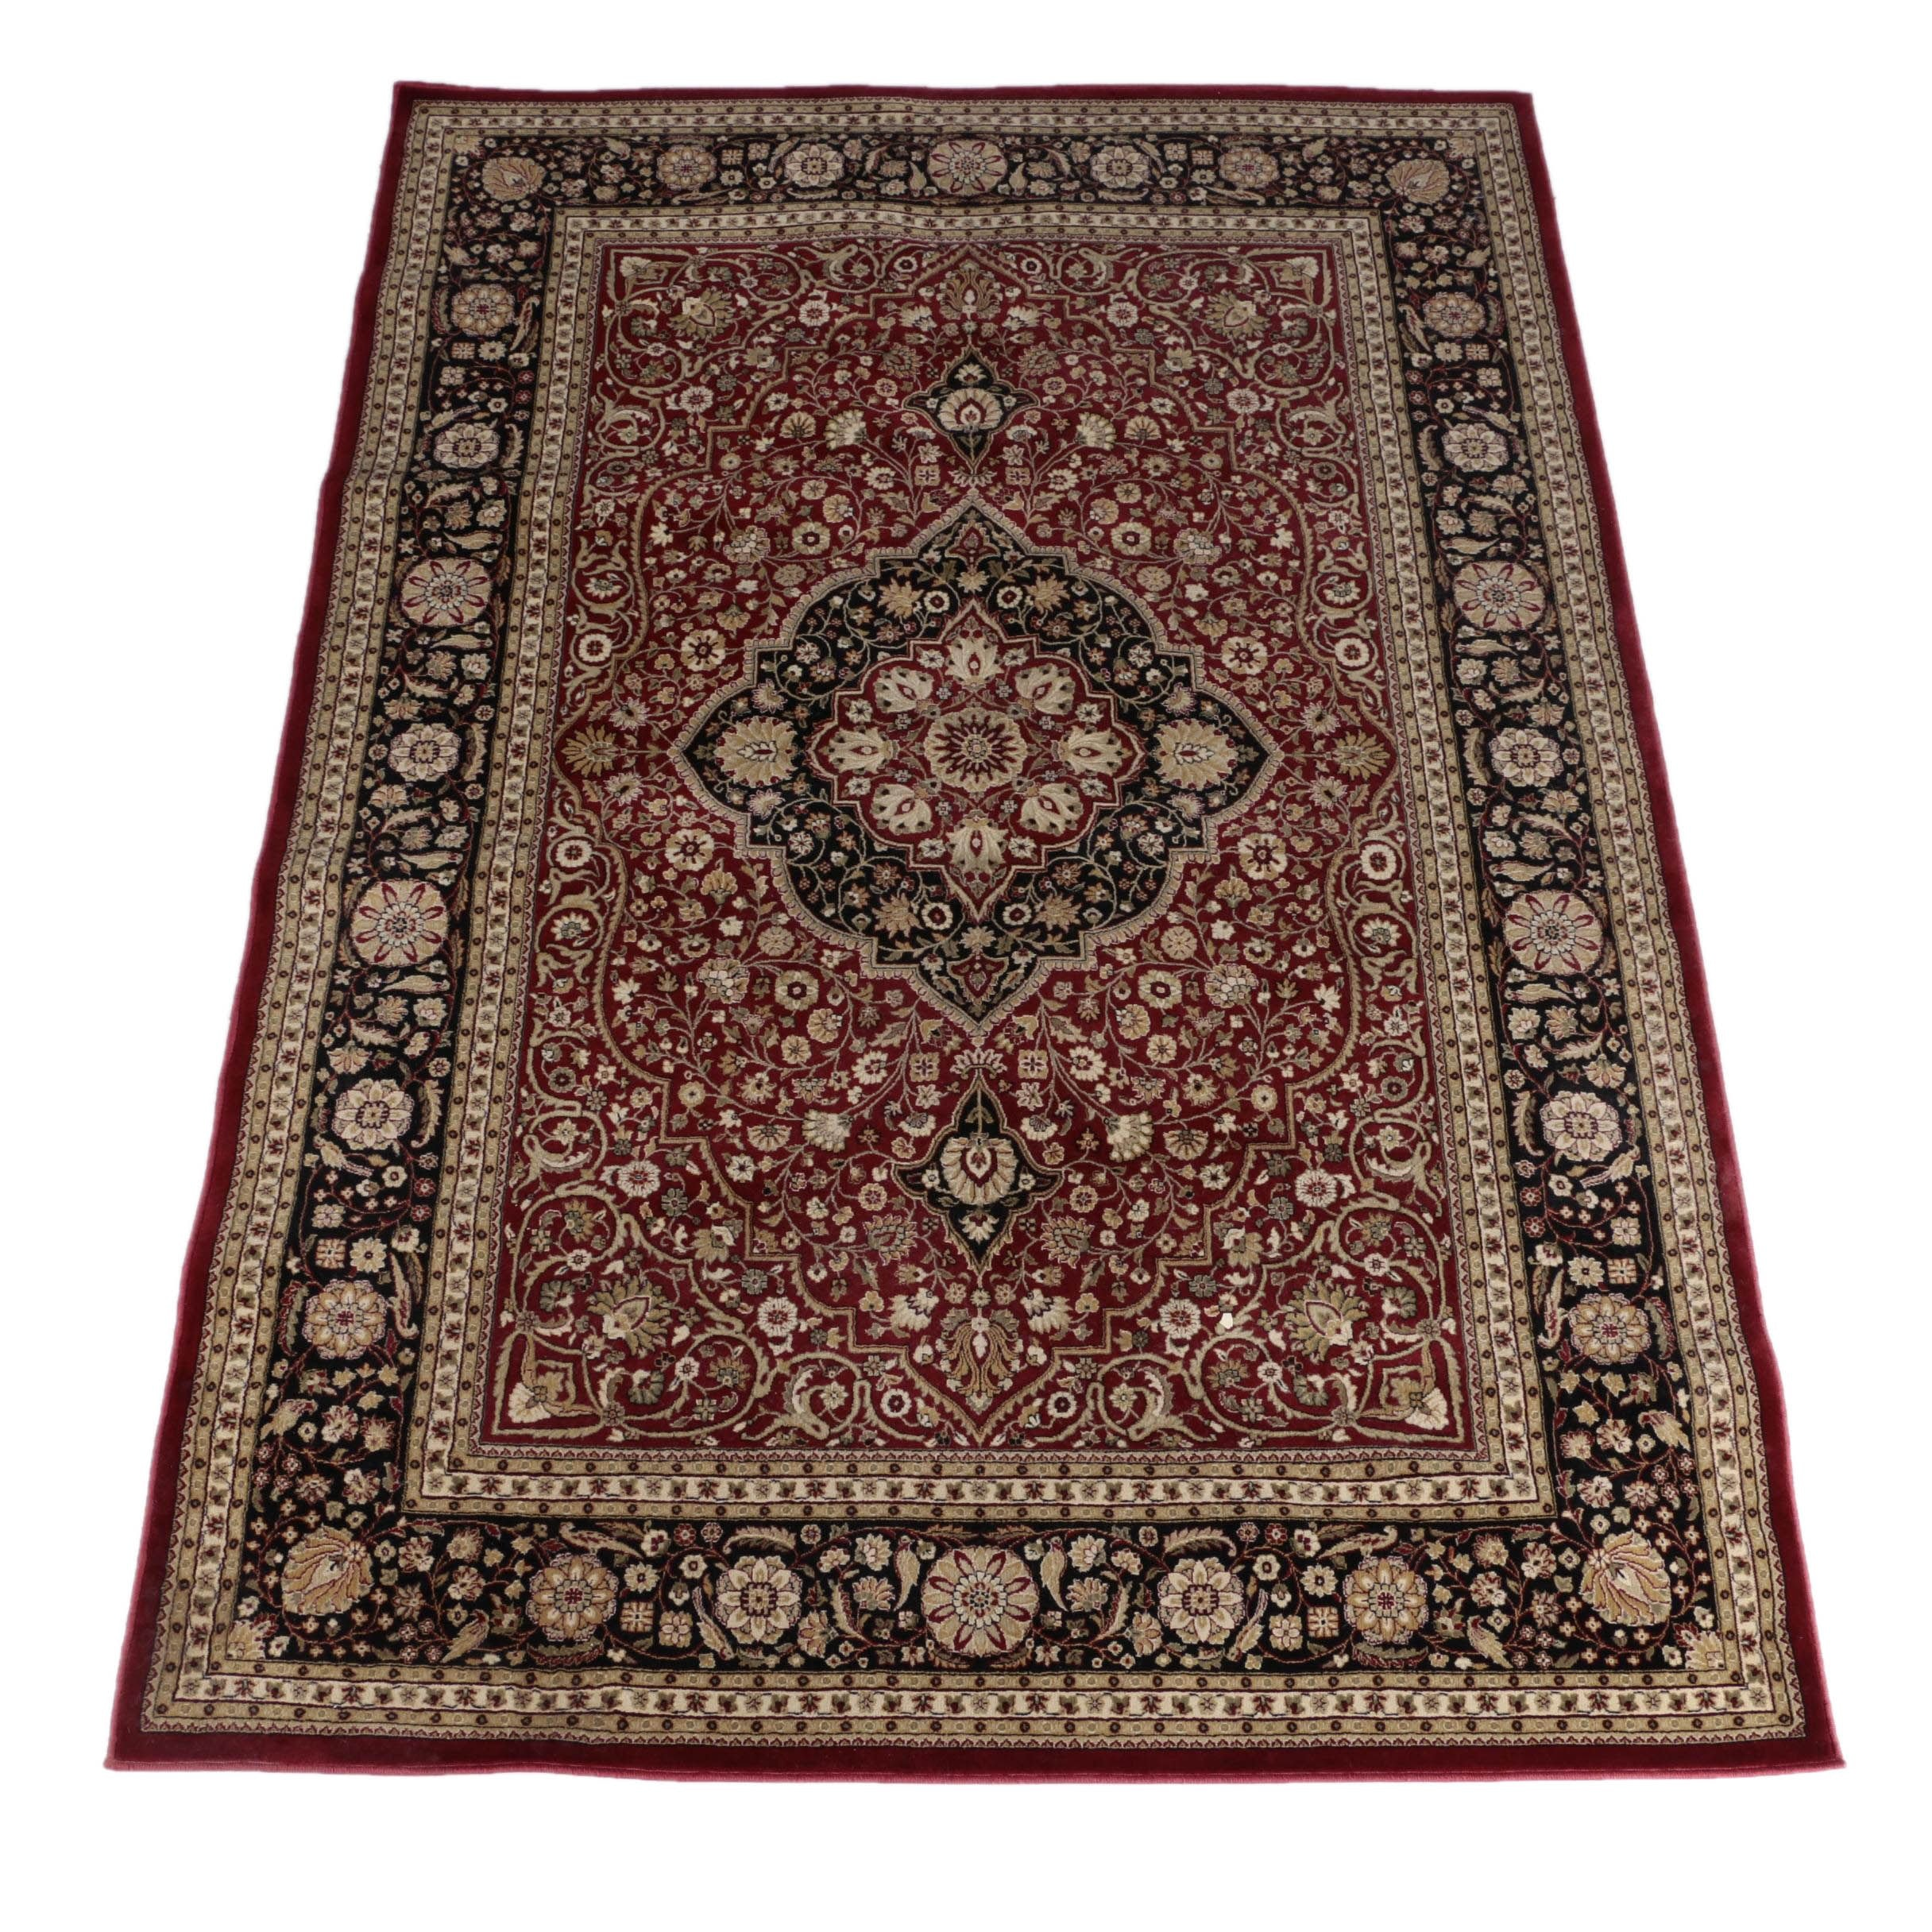 "Power-Loomed ""Taughton Claret"" Area Rug"